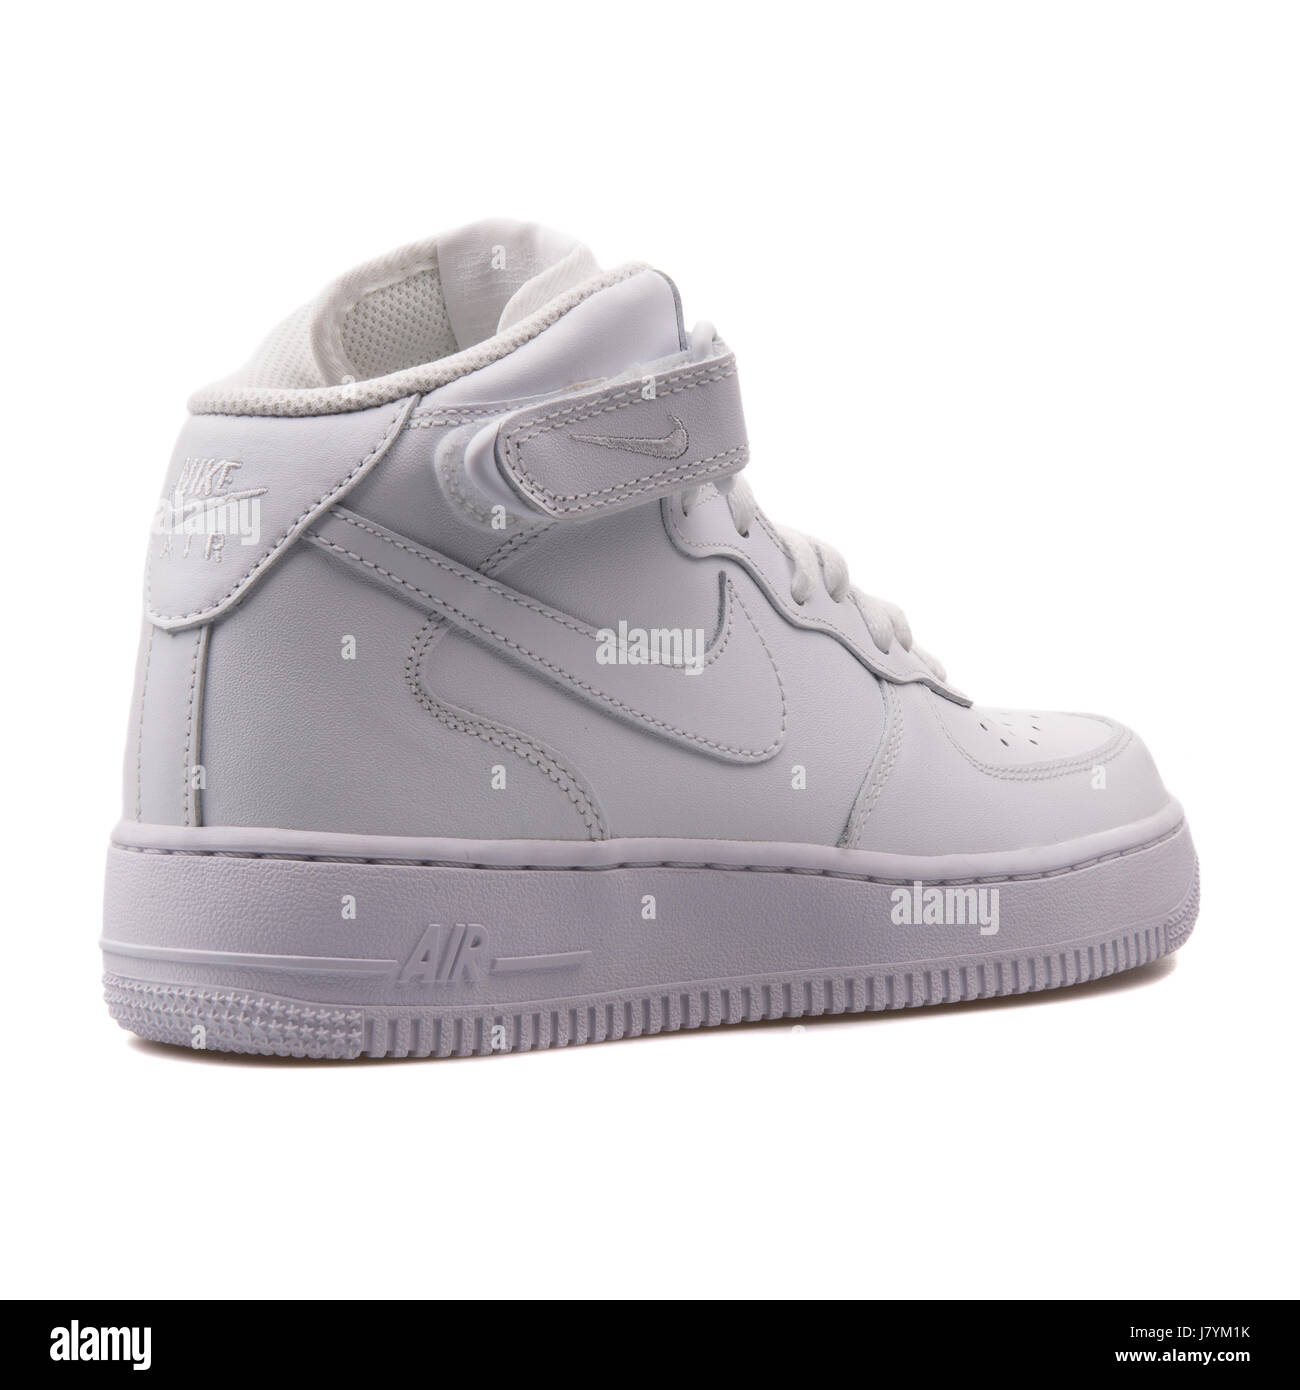 official photos 9df8c b3208 Nike WMNS Air Force 1 Mid  07 LE White Women s Sports Sneakers - 366731-